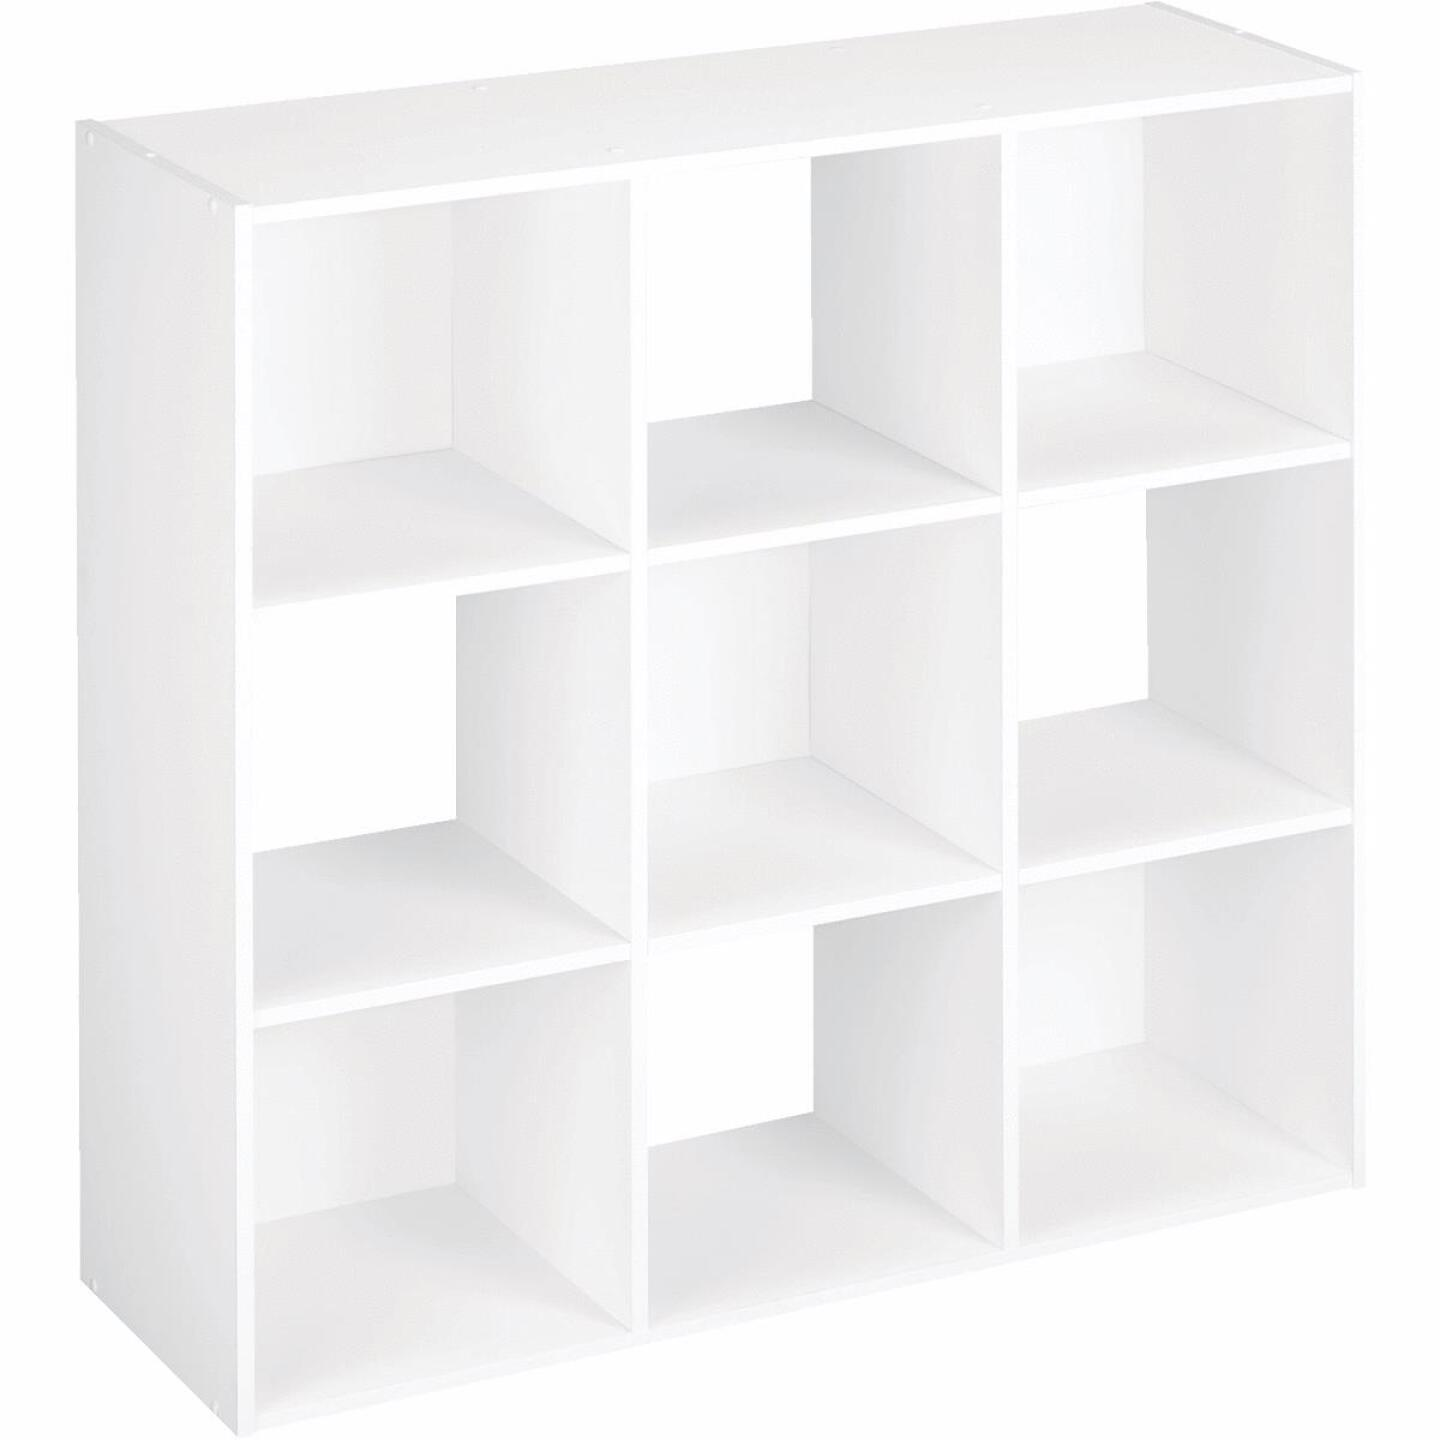 ClosetMaid Cubeicals White 9-Cube Storage Stacker Organizer Image 1